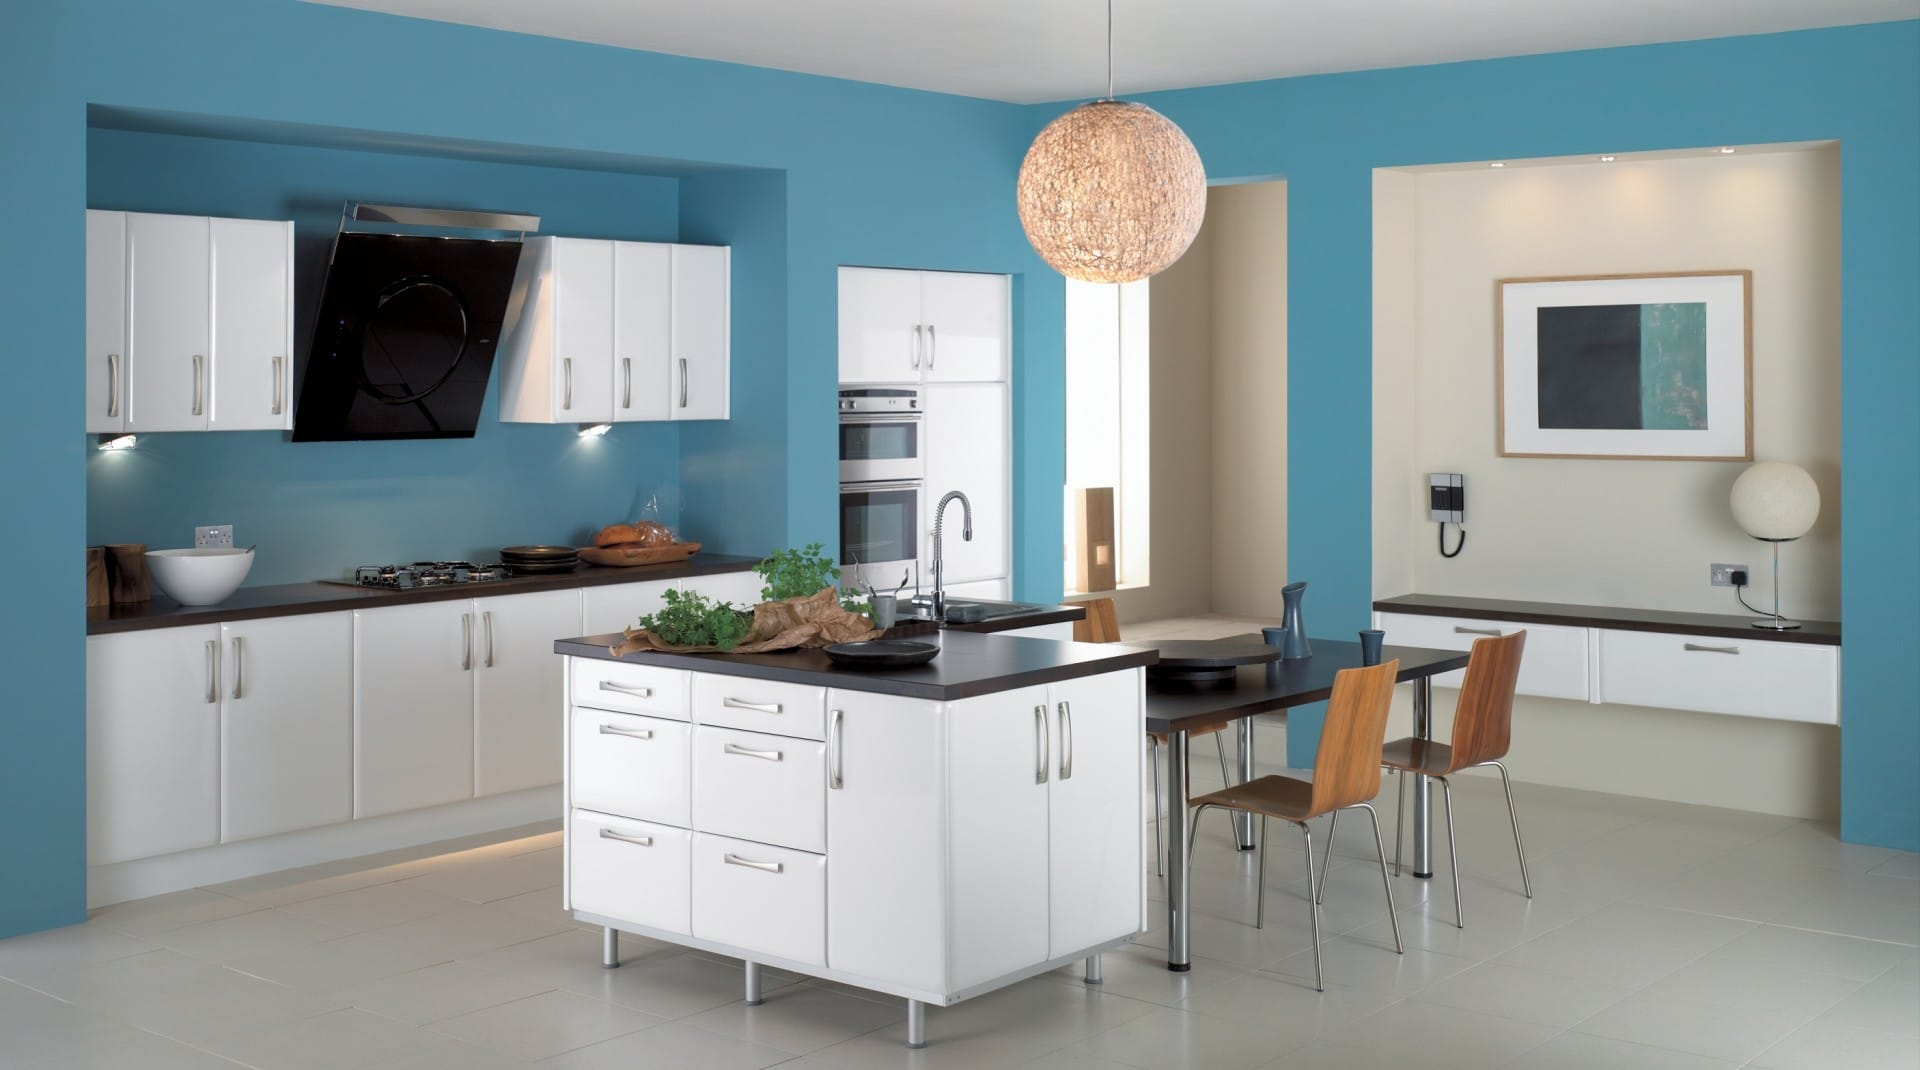 What is the best color to paint the walls of small kitchen - Small kitchen paint ideas ...